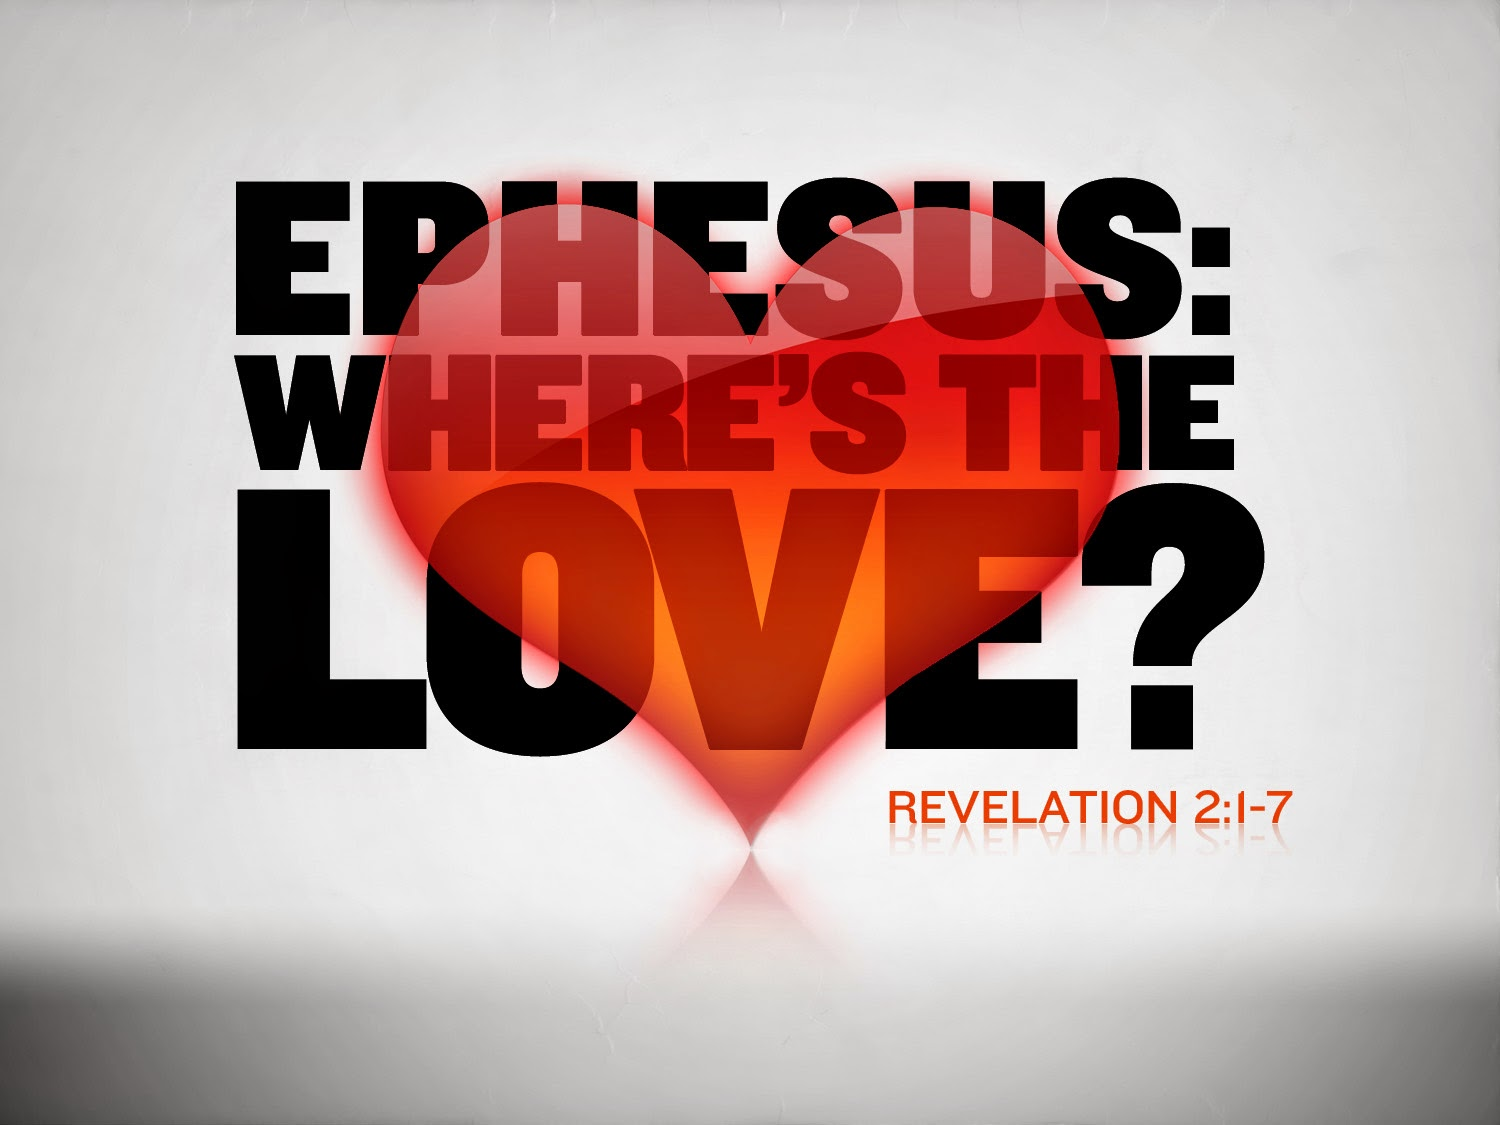 Ephesus --> Desirable - Jesus Christ's Desire is to be our First LOVE